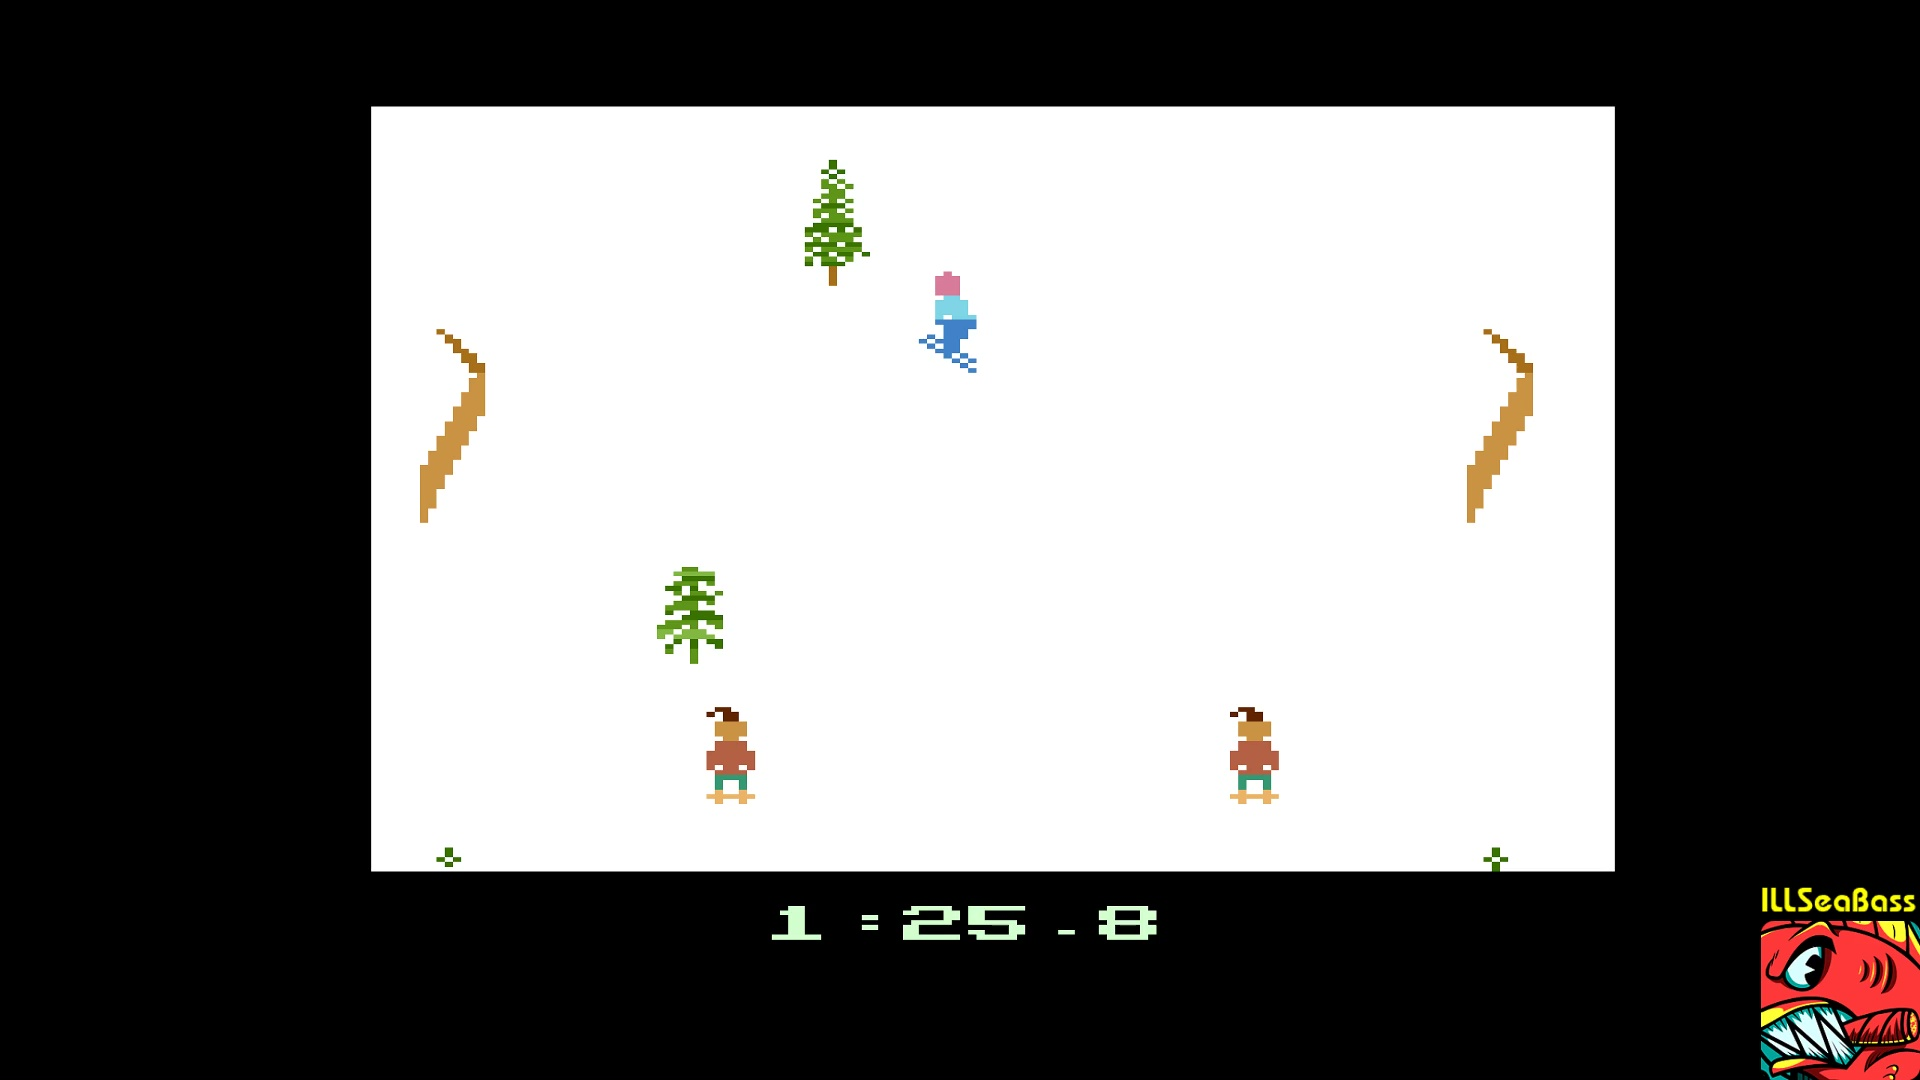 ILLSeaBass: Winter Games: Biathlon [Best Time] (Atari 2600 Emulated) 0:01:25.8 points on 2017-12-29 12:36:09